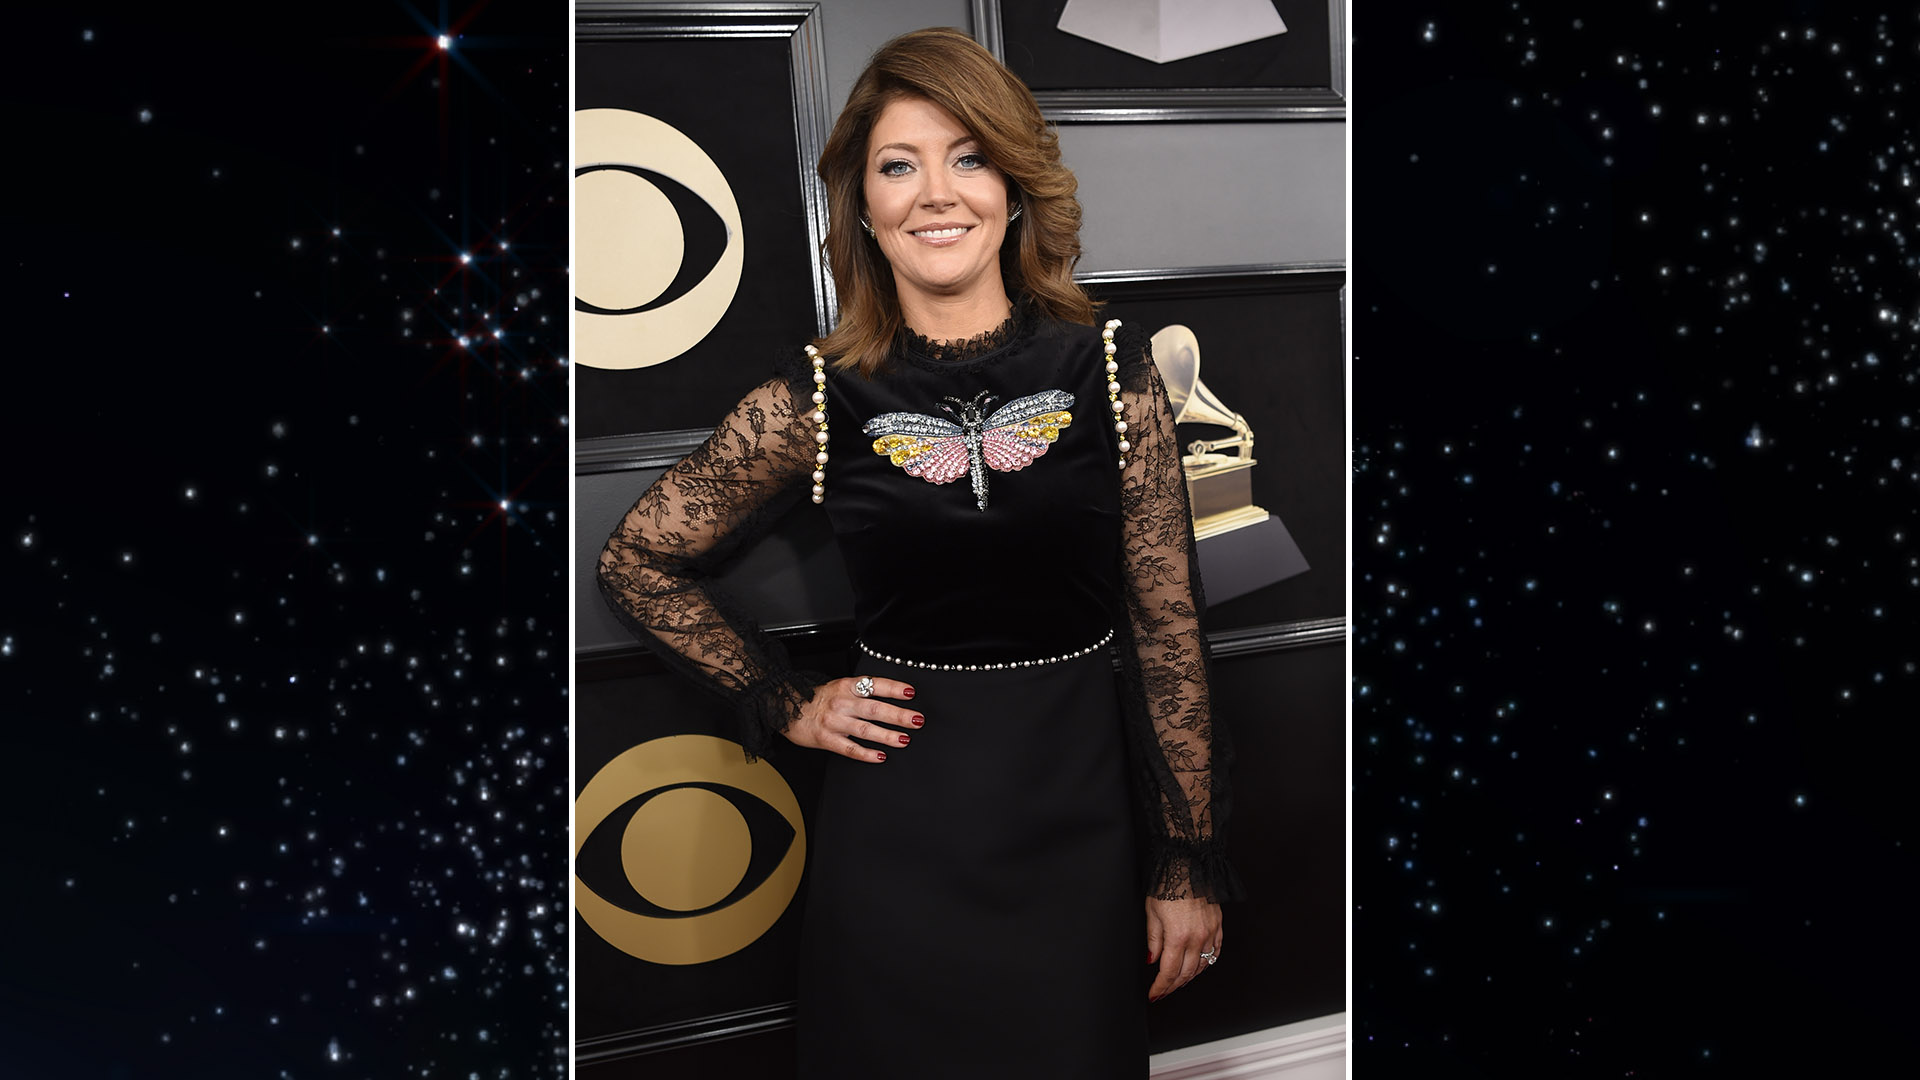 CBS This Morning co-anchor Norah O'Donnell sails down the red carpet in a simple black dress with butterfly embellishment.